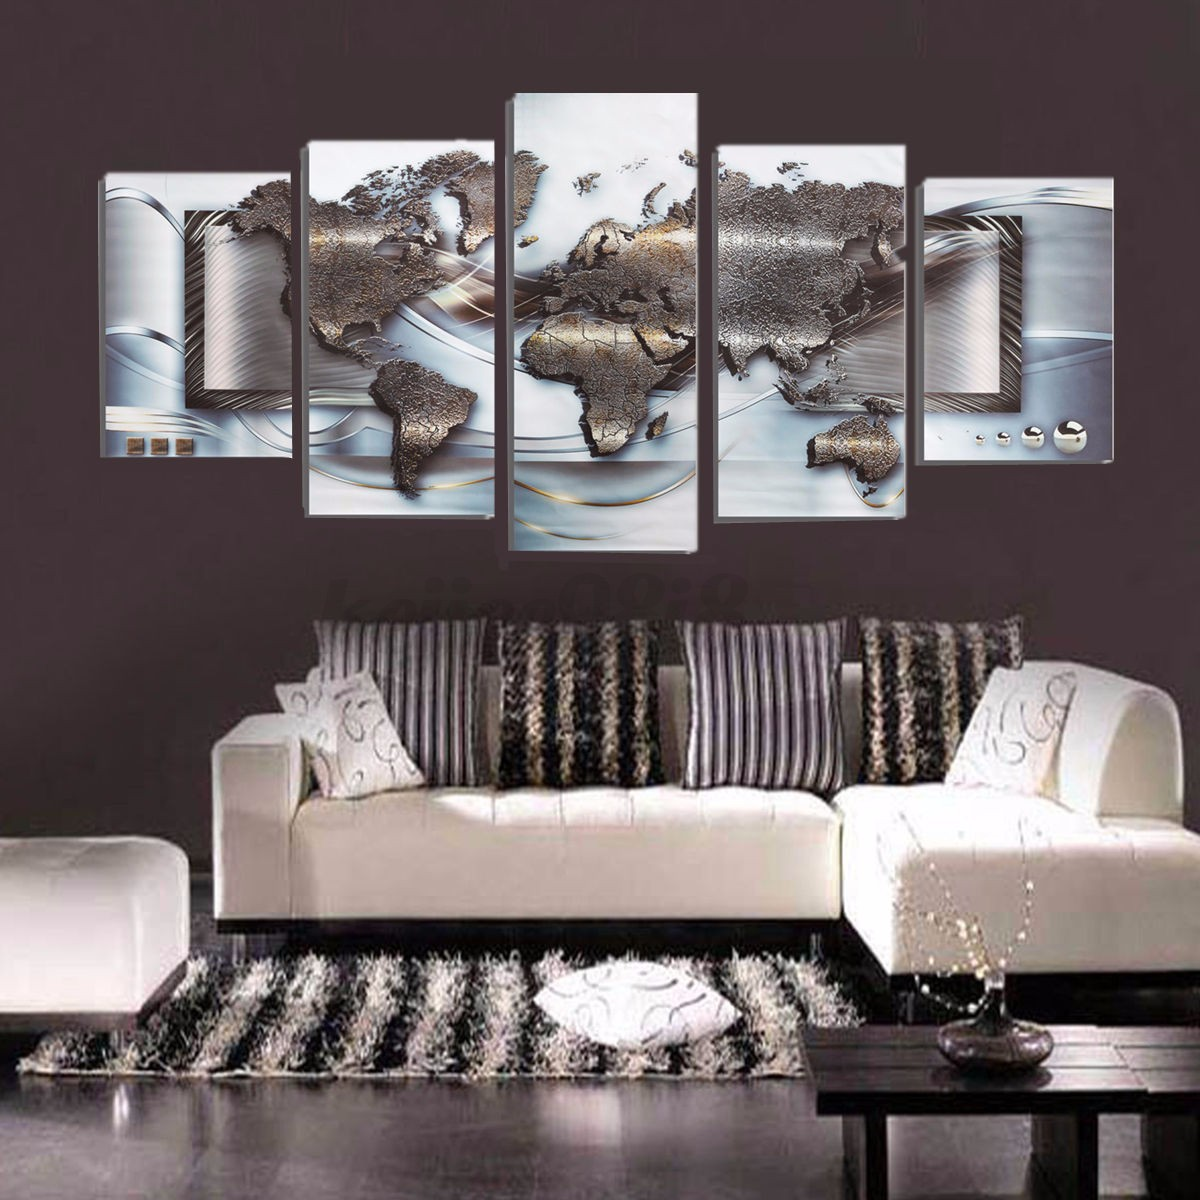 Large unframed canvas 3d world map print image picture for Large 3d wall art